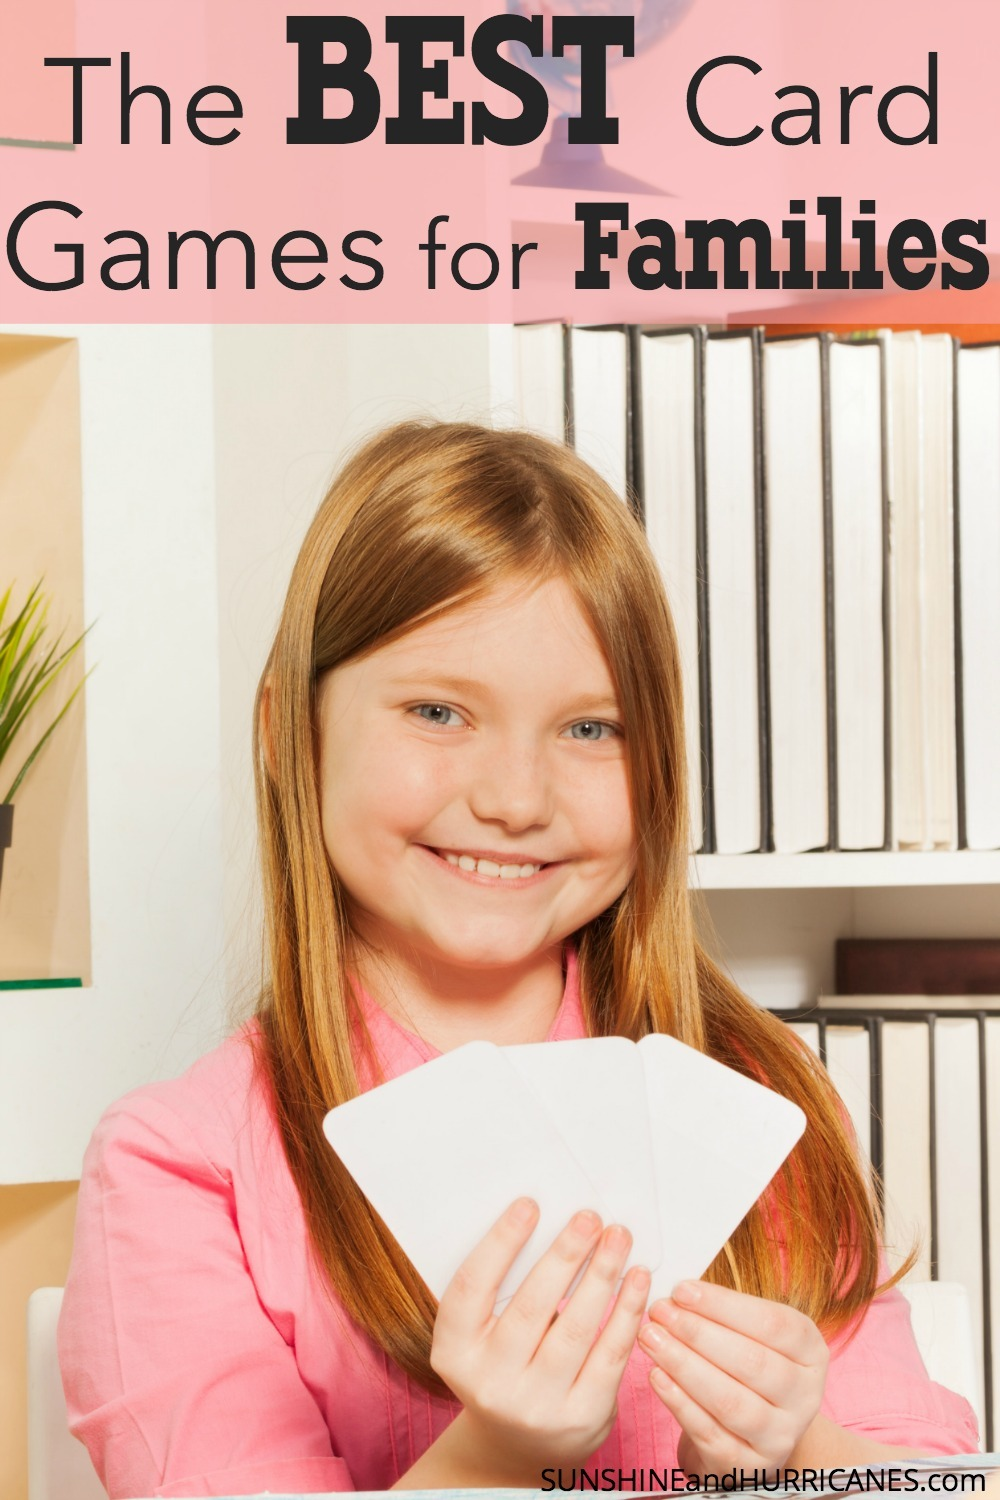 Looking for a fun way to spice up family game night? Need some ideas for games when grandparents or family members visit? We've got great ideas that family members from preschooler to teen and even that crazy Uncle will love! Bring the fun to your family room with these awesome suggestions for all ages! The Best Card Games for Families